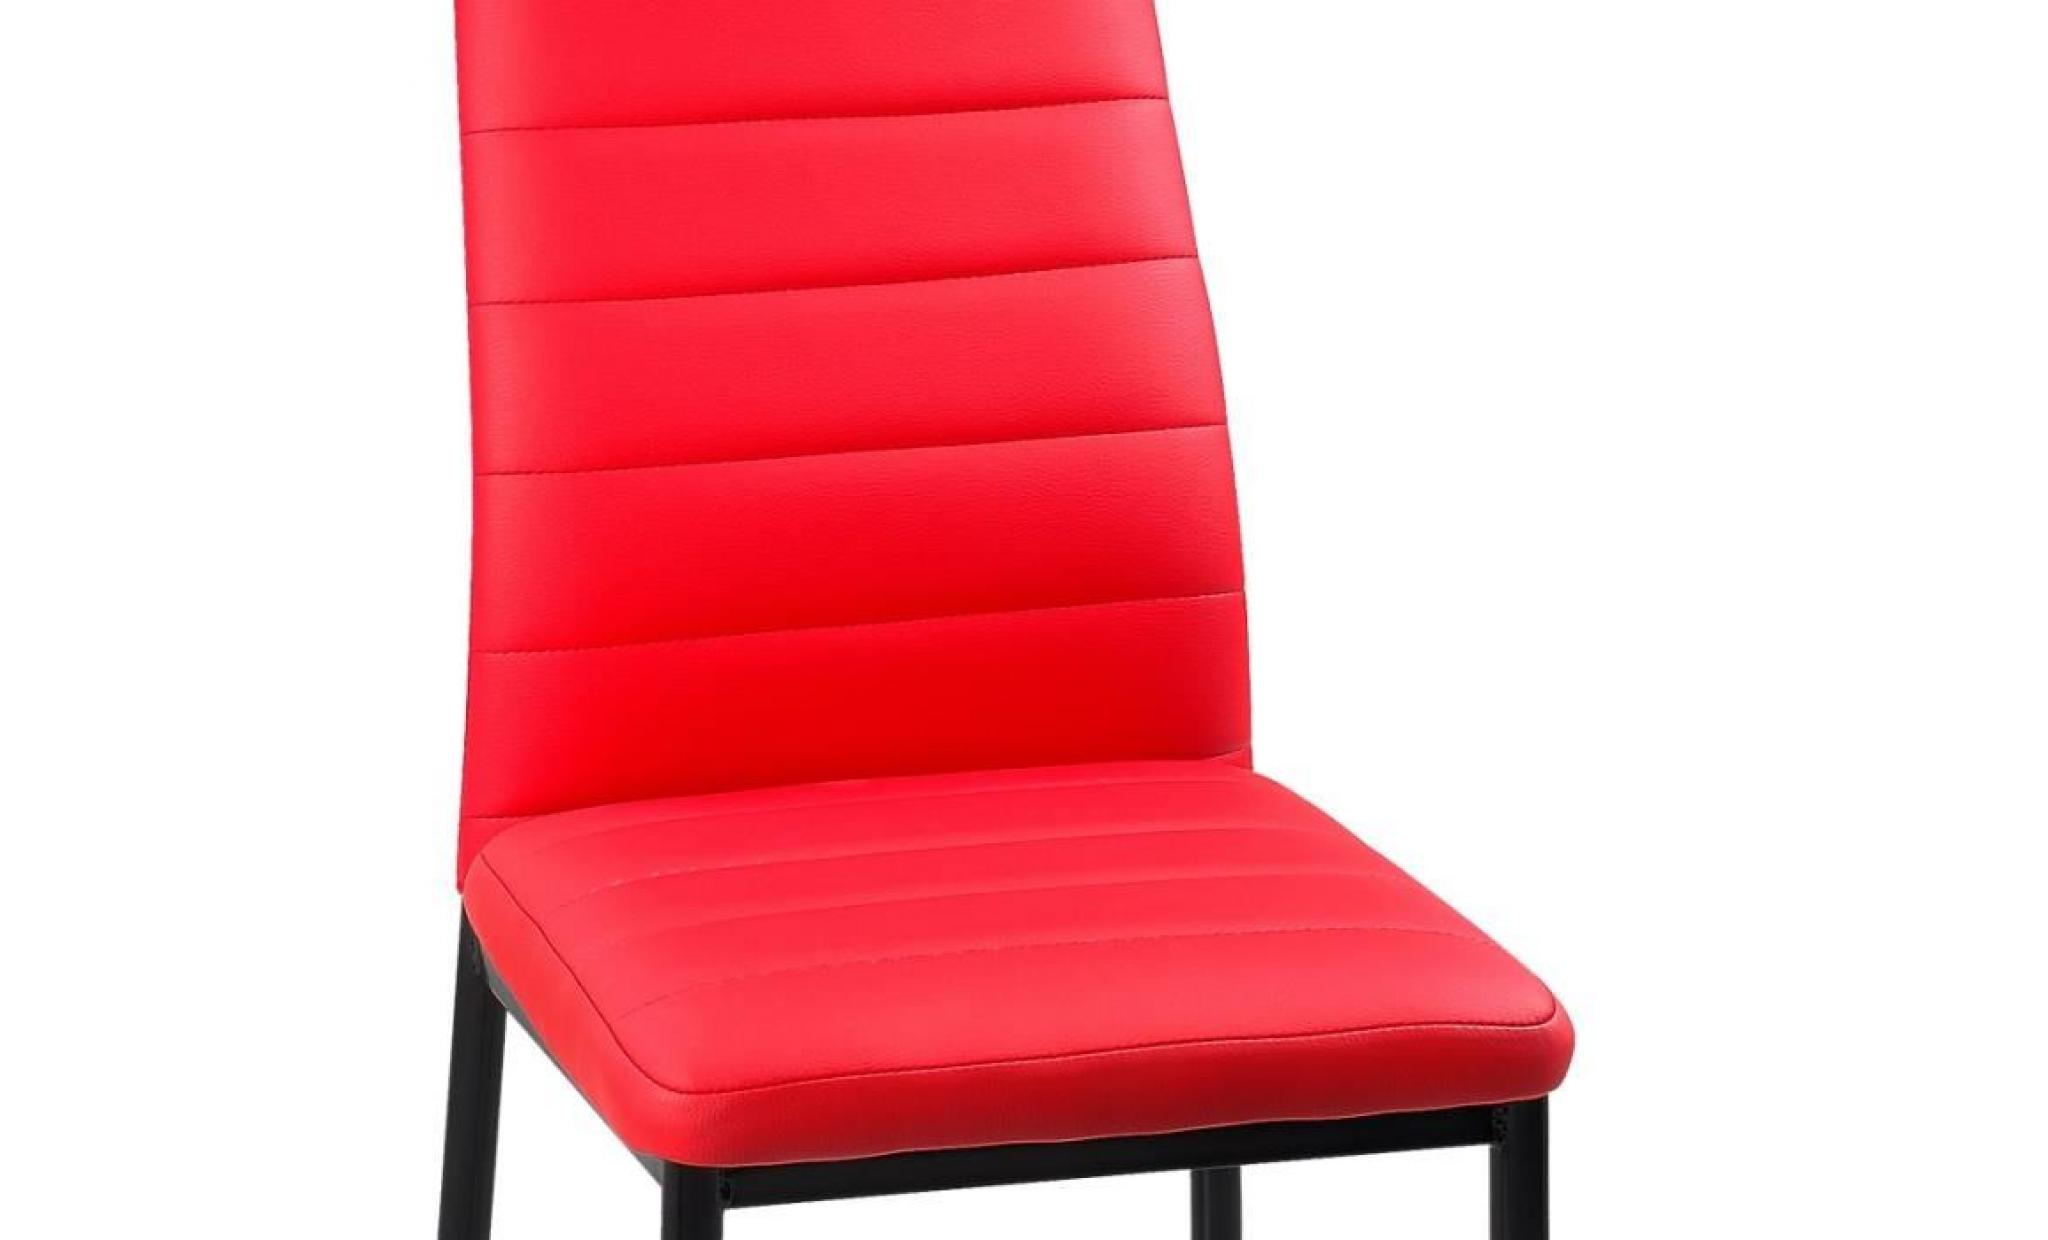 lot de 4 chaises rouge iris achat vente chaise salle a manger pas cher couleur et. Black Bedroom Furniture Sets. Home Design Ideas